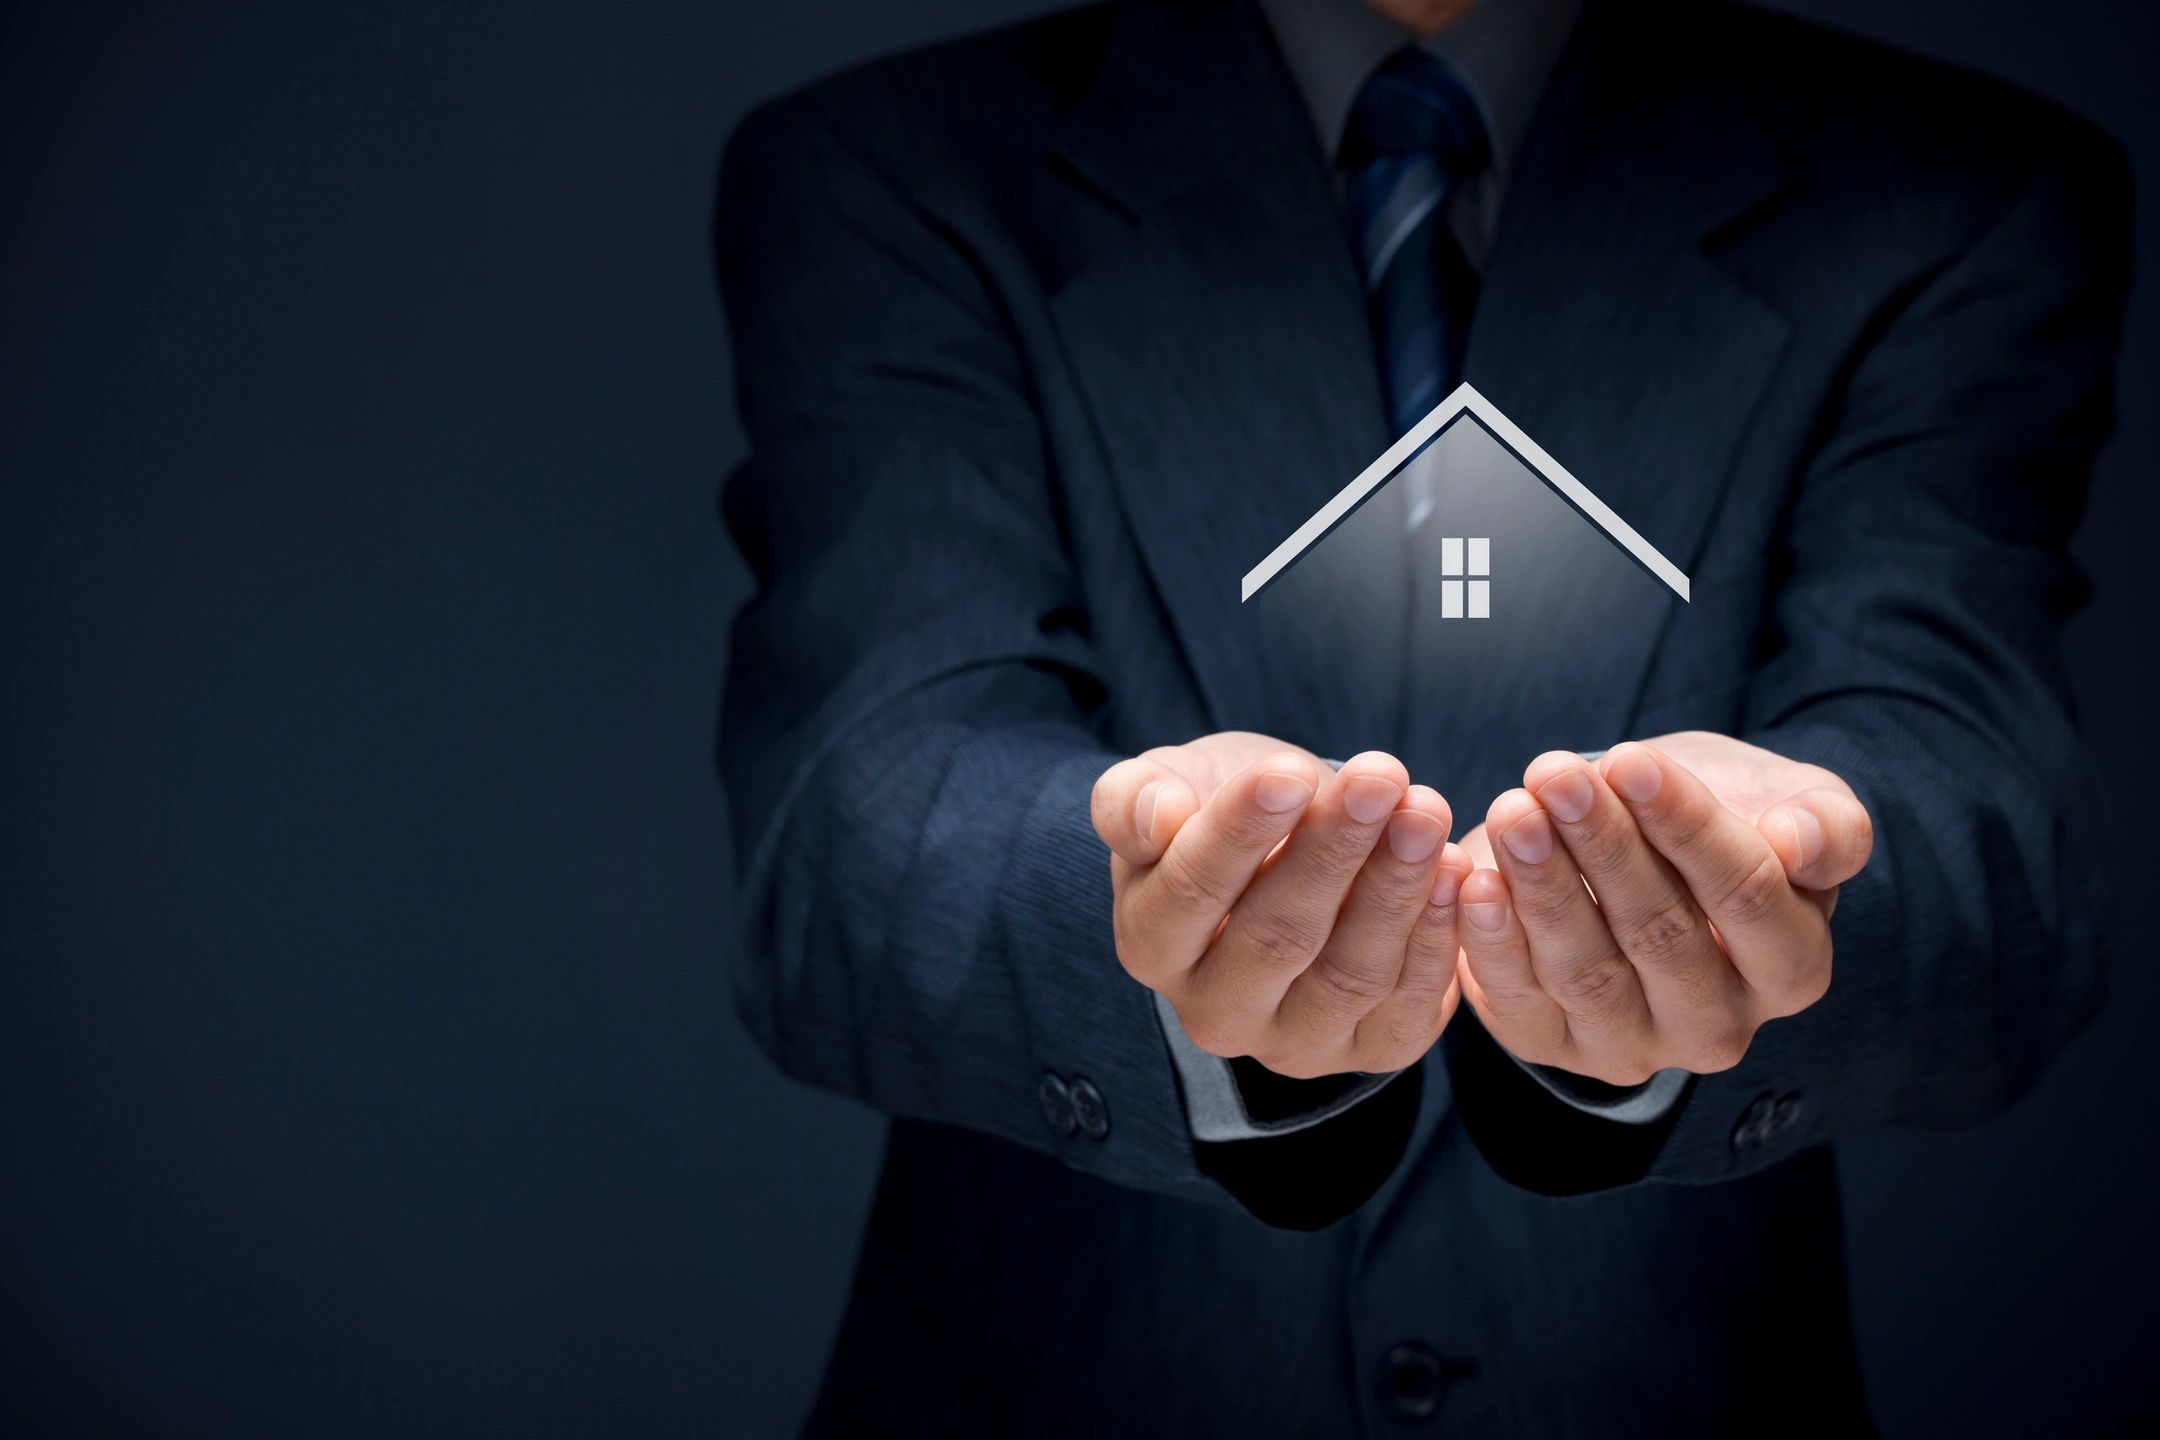 Ask The Lawyer By: Daniel A. Gwinn, Esq, Is our Realtor Breaking the Law?